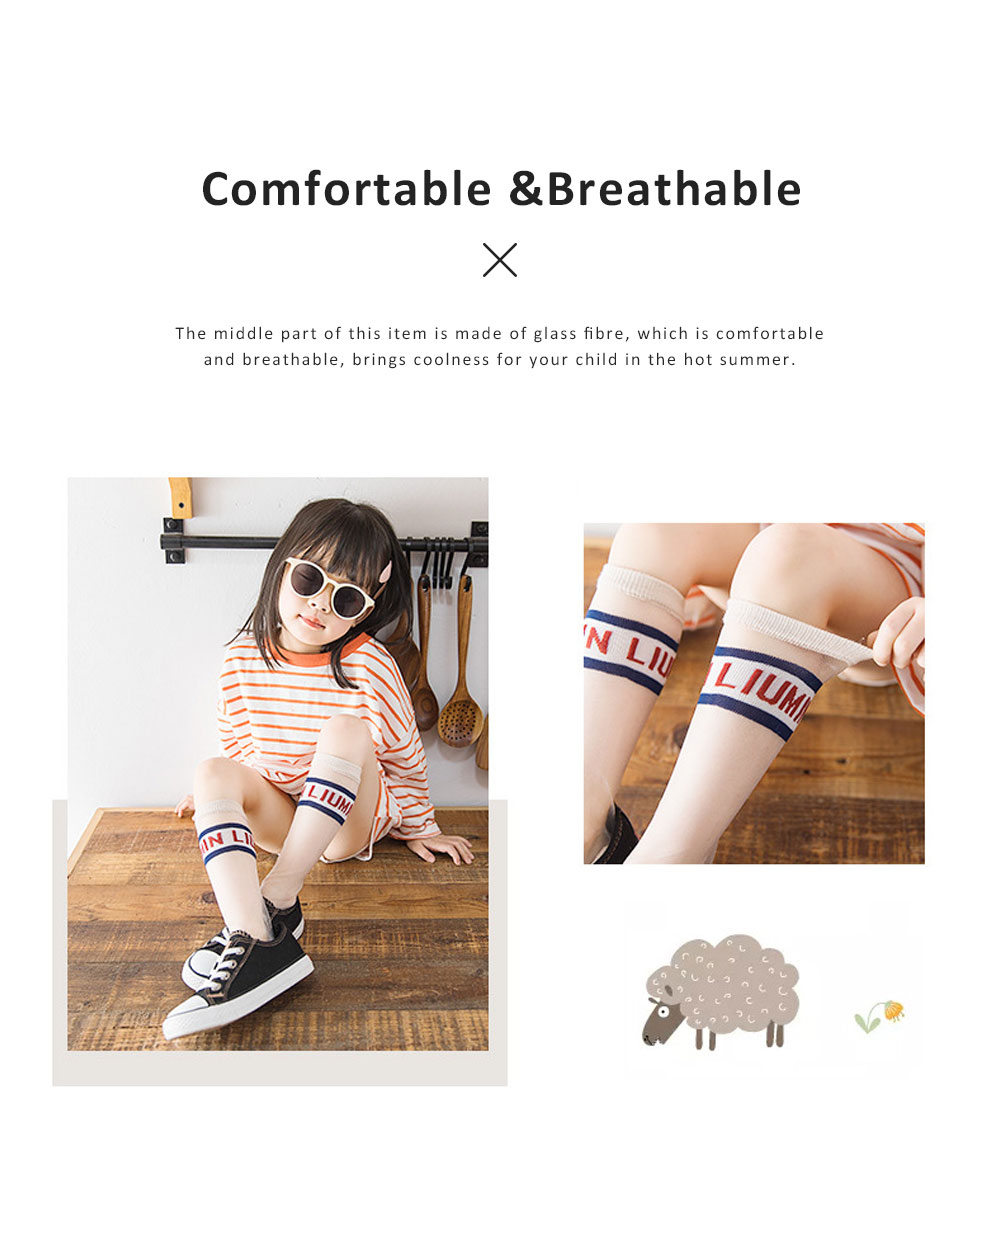 2019 Latest Fashionable Monogrammed Socks for Children, Glass Fibre Material Over-the-knee Mid-calf Length Socks 2